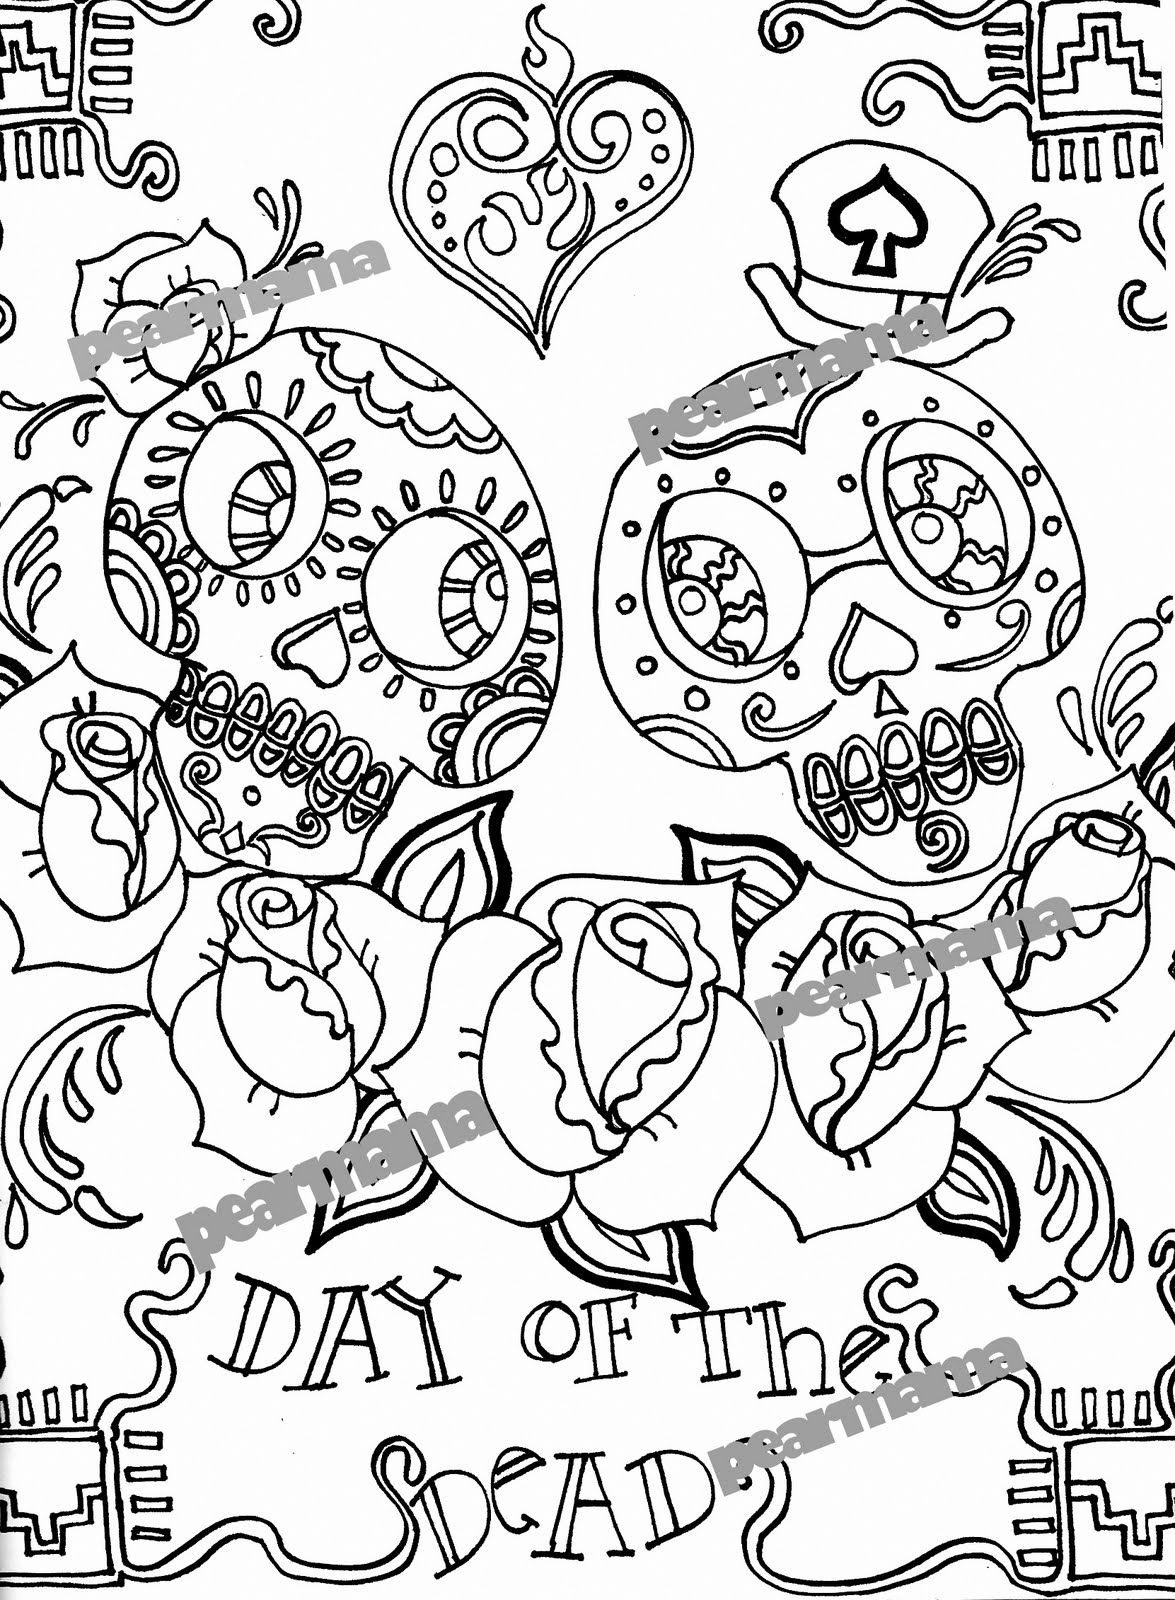 day of the dead coloring pages free day of the dead printable coloring pages coloring pages day the free dead coloring of pages